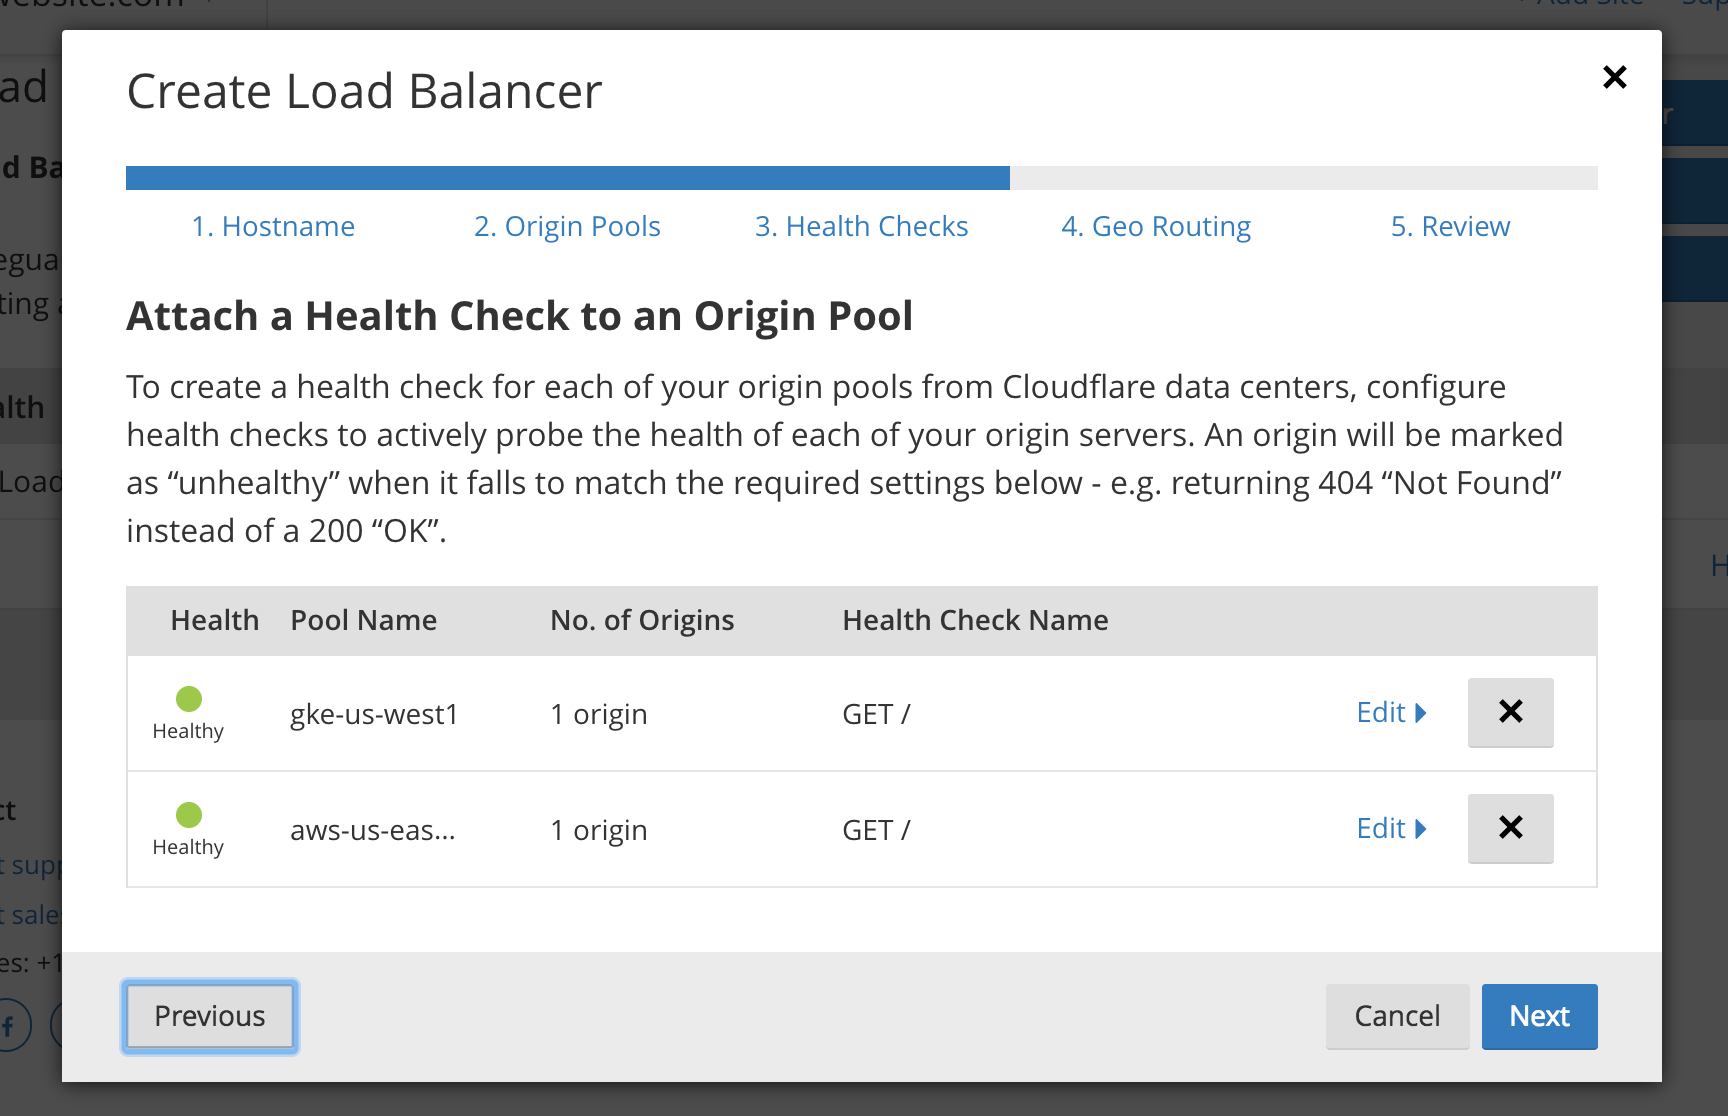 Old URL: https://support.cloudflare.com/hc/article_attachments/115003974571/CF_LB_Health_Check.png Article IDs: 115003384591 | Using Kubernetes on GKE and AWS with Cloudflare Load Balancer